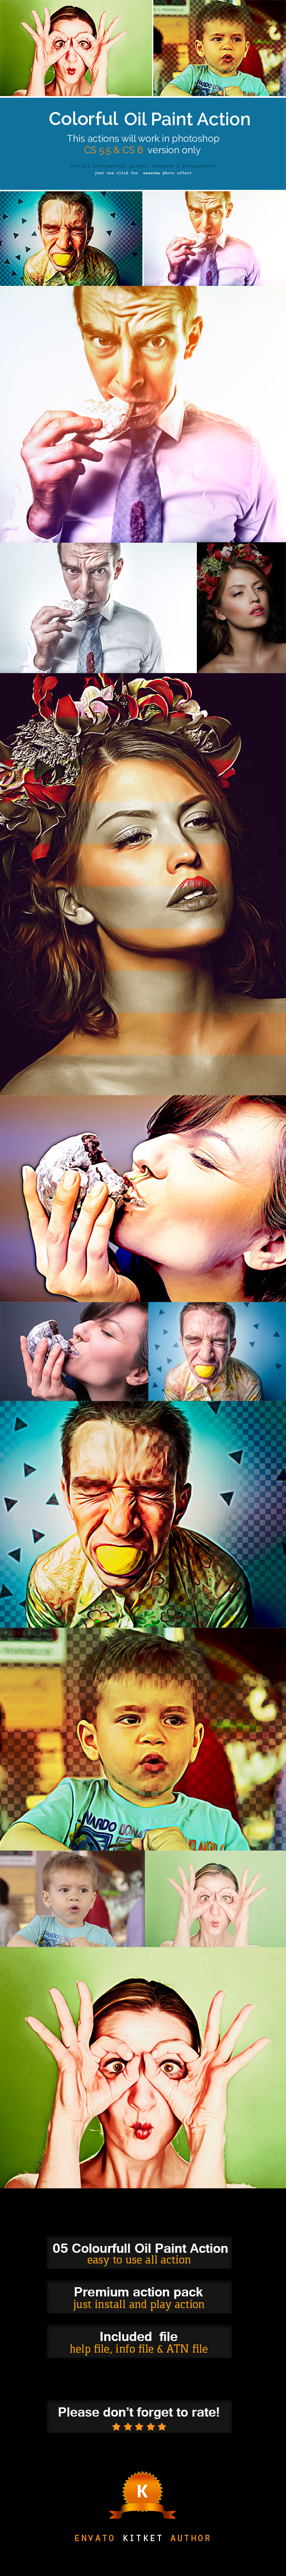 Colorful Oil Paint Action - Photo Effects Actions